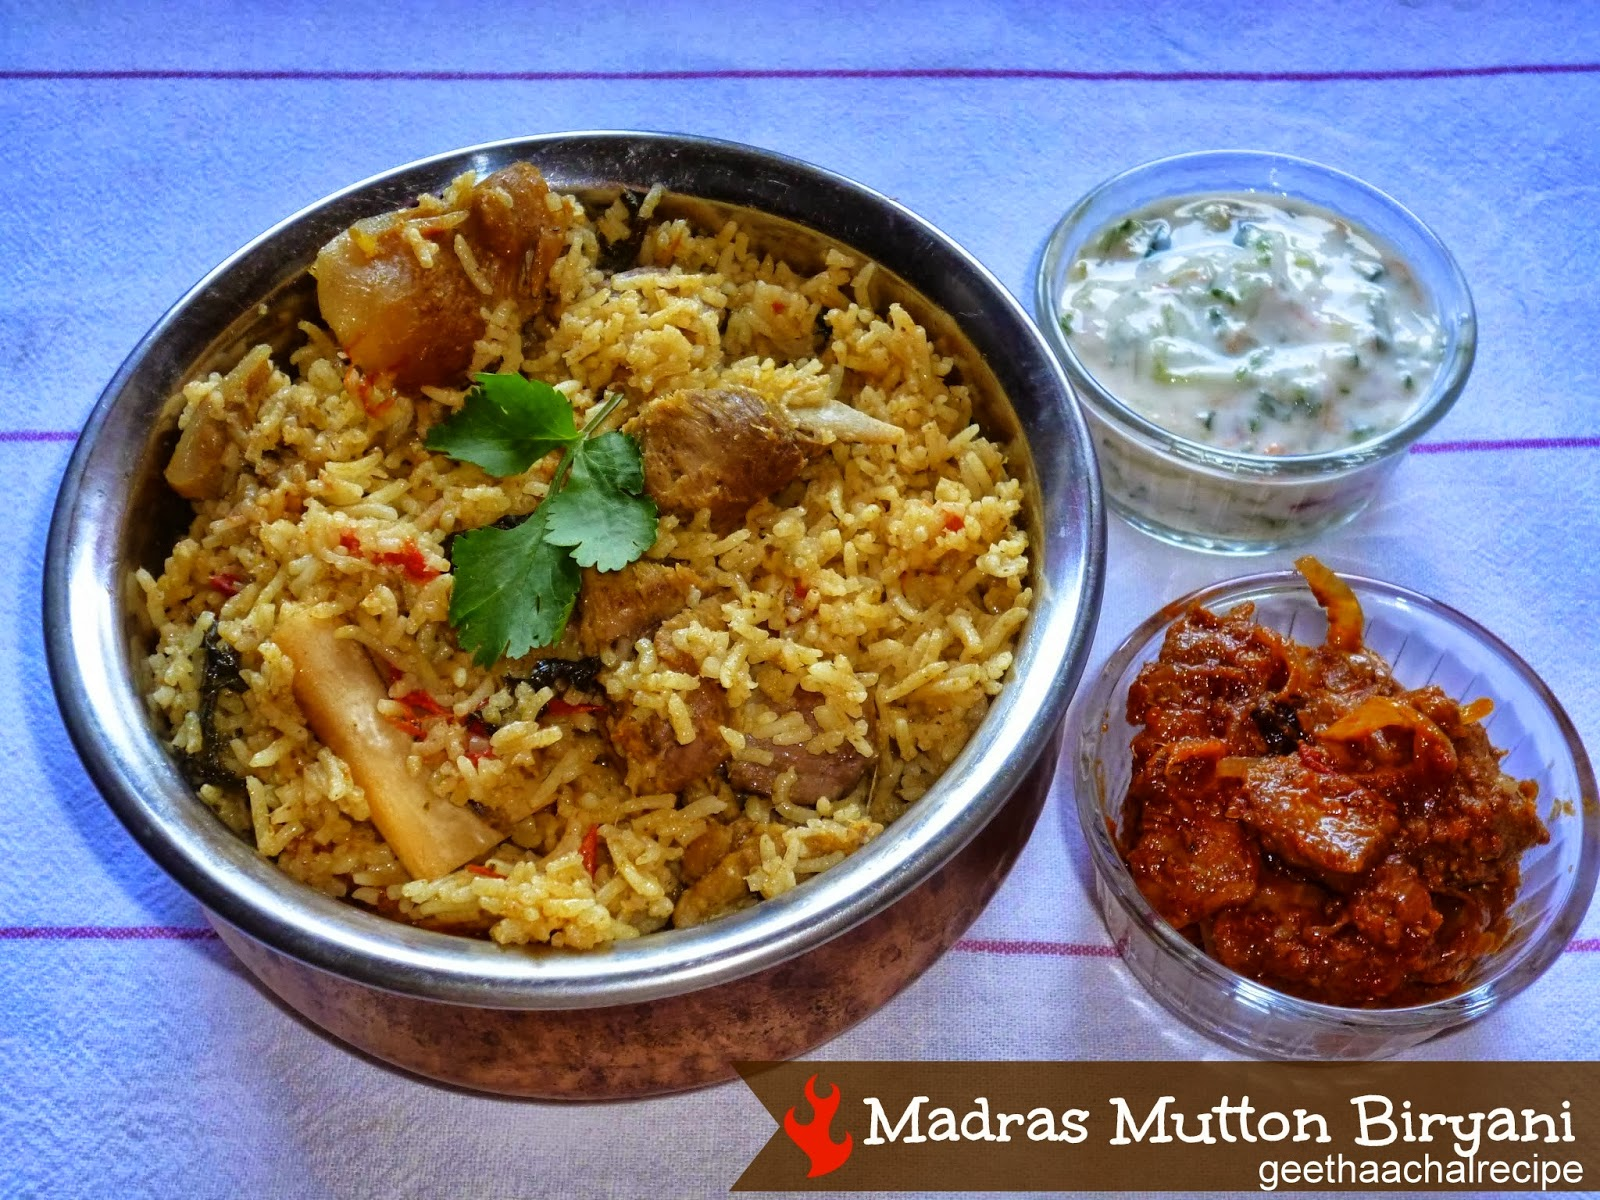 Madras Mutton Biryani